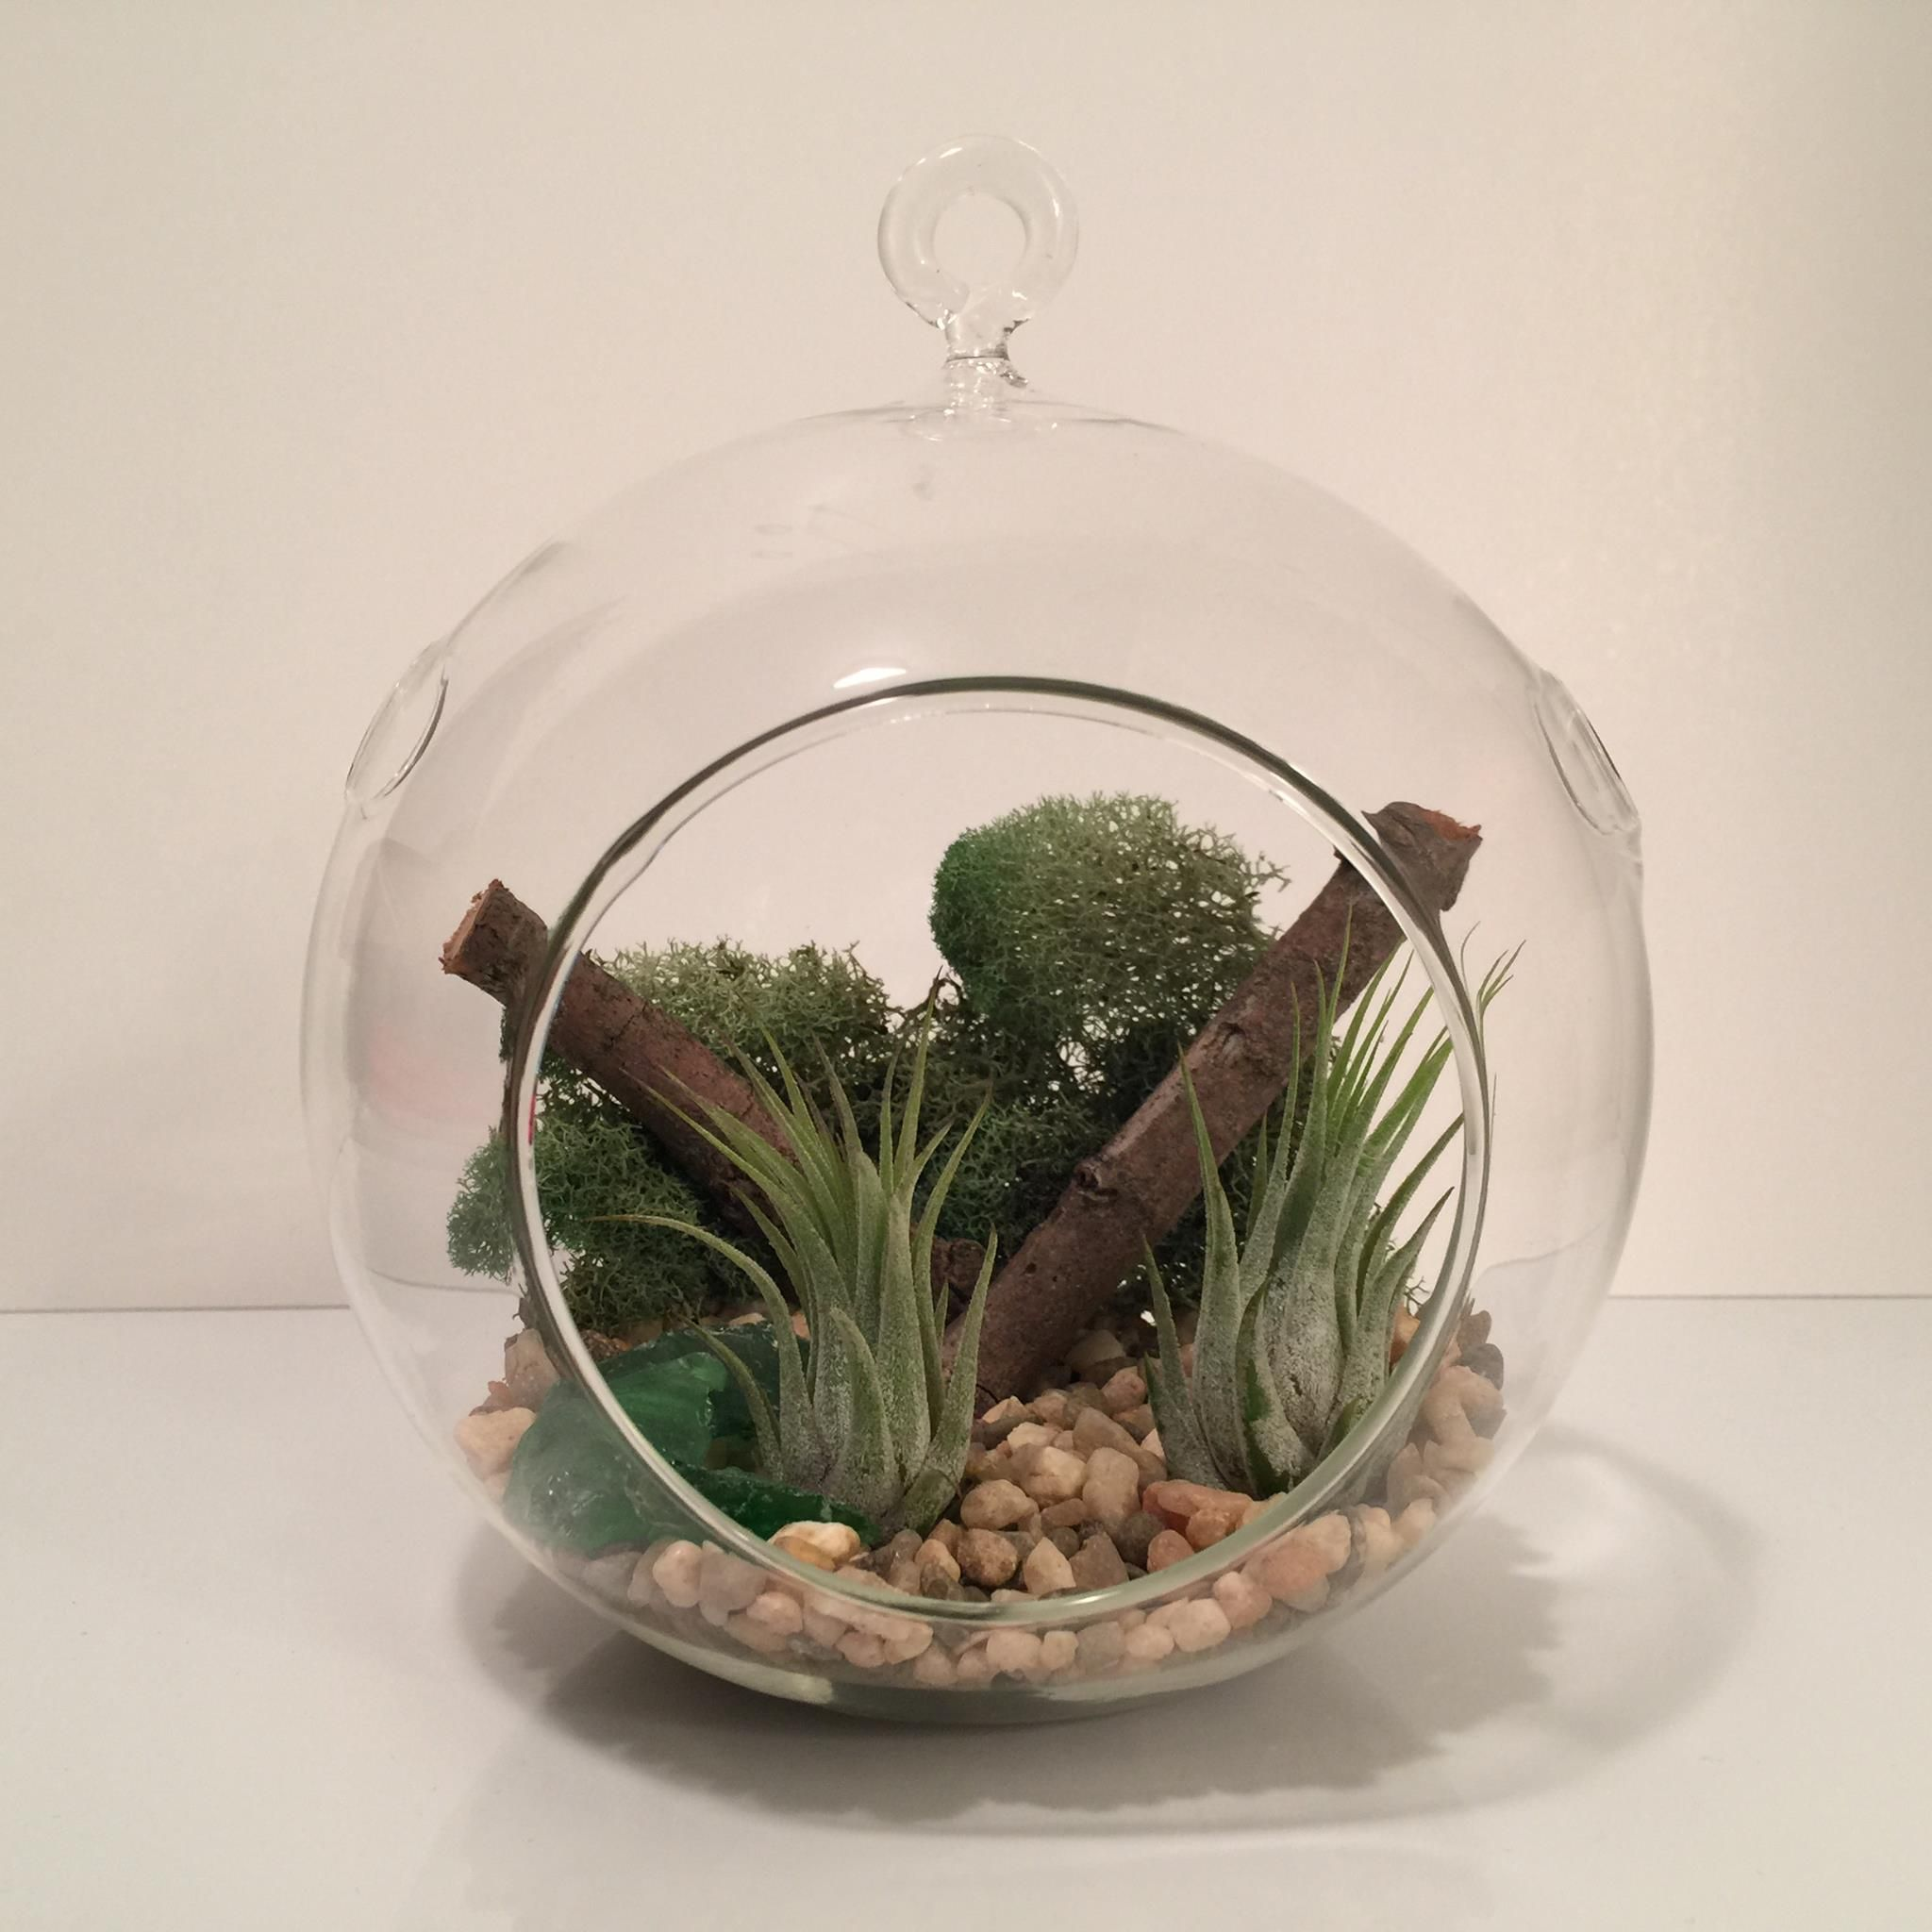 Large Round Air Plant Terrarium. Natural rock accents